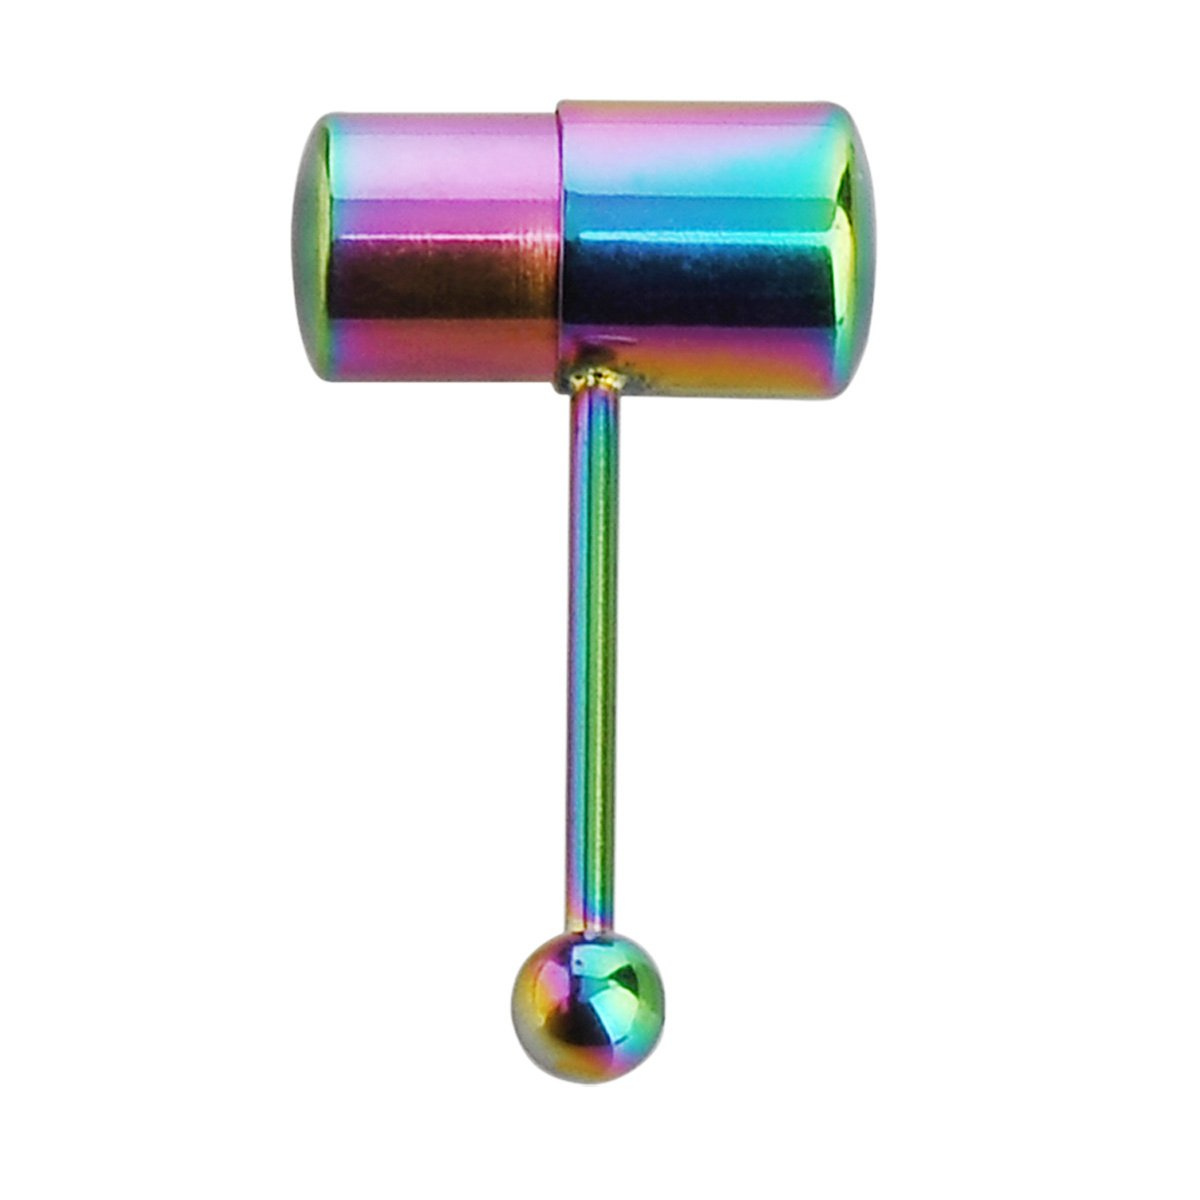 IPINK 14g Stainless Steel Vibrating Tongue Piercing Barbell Stud with 2 Batteries ZPB0226-Colorful